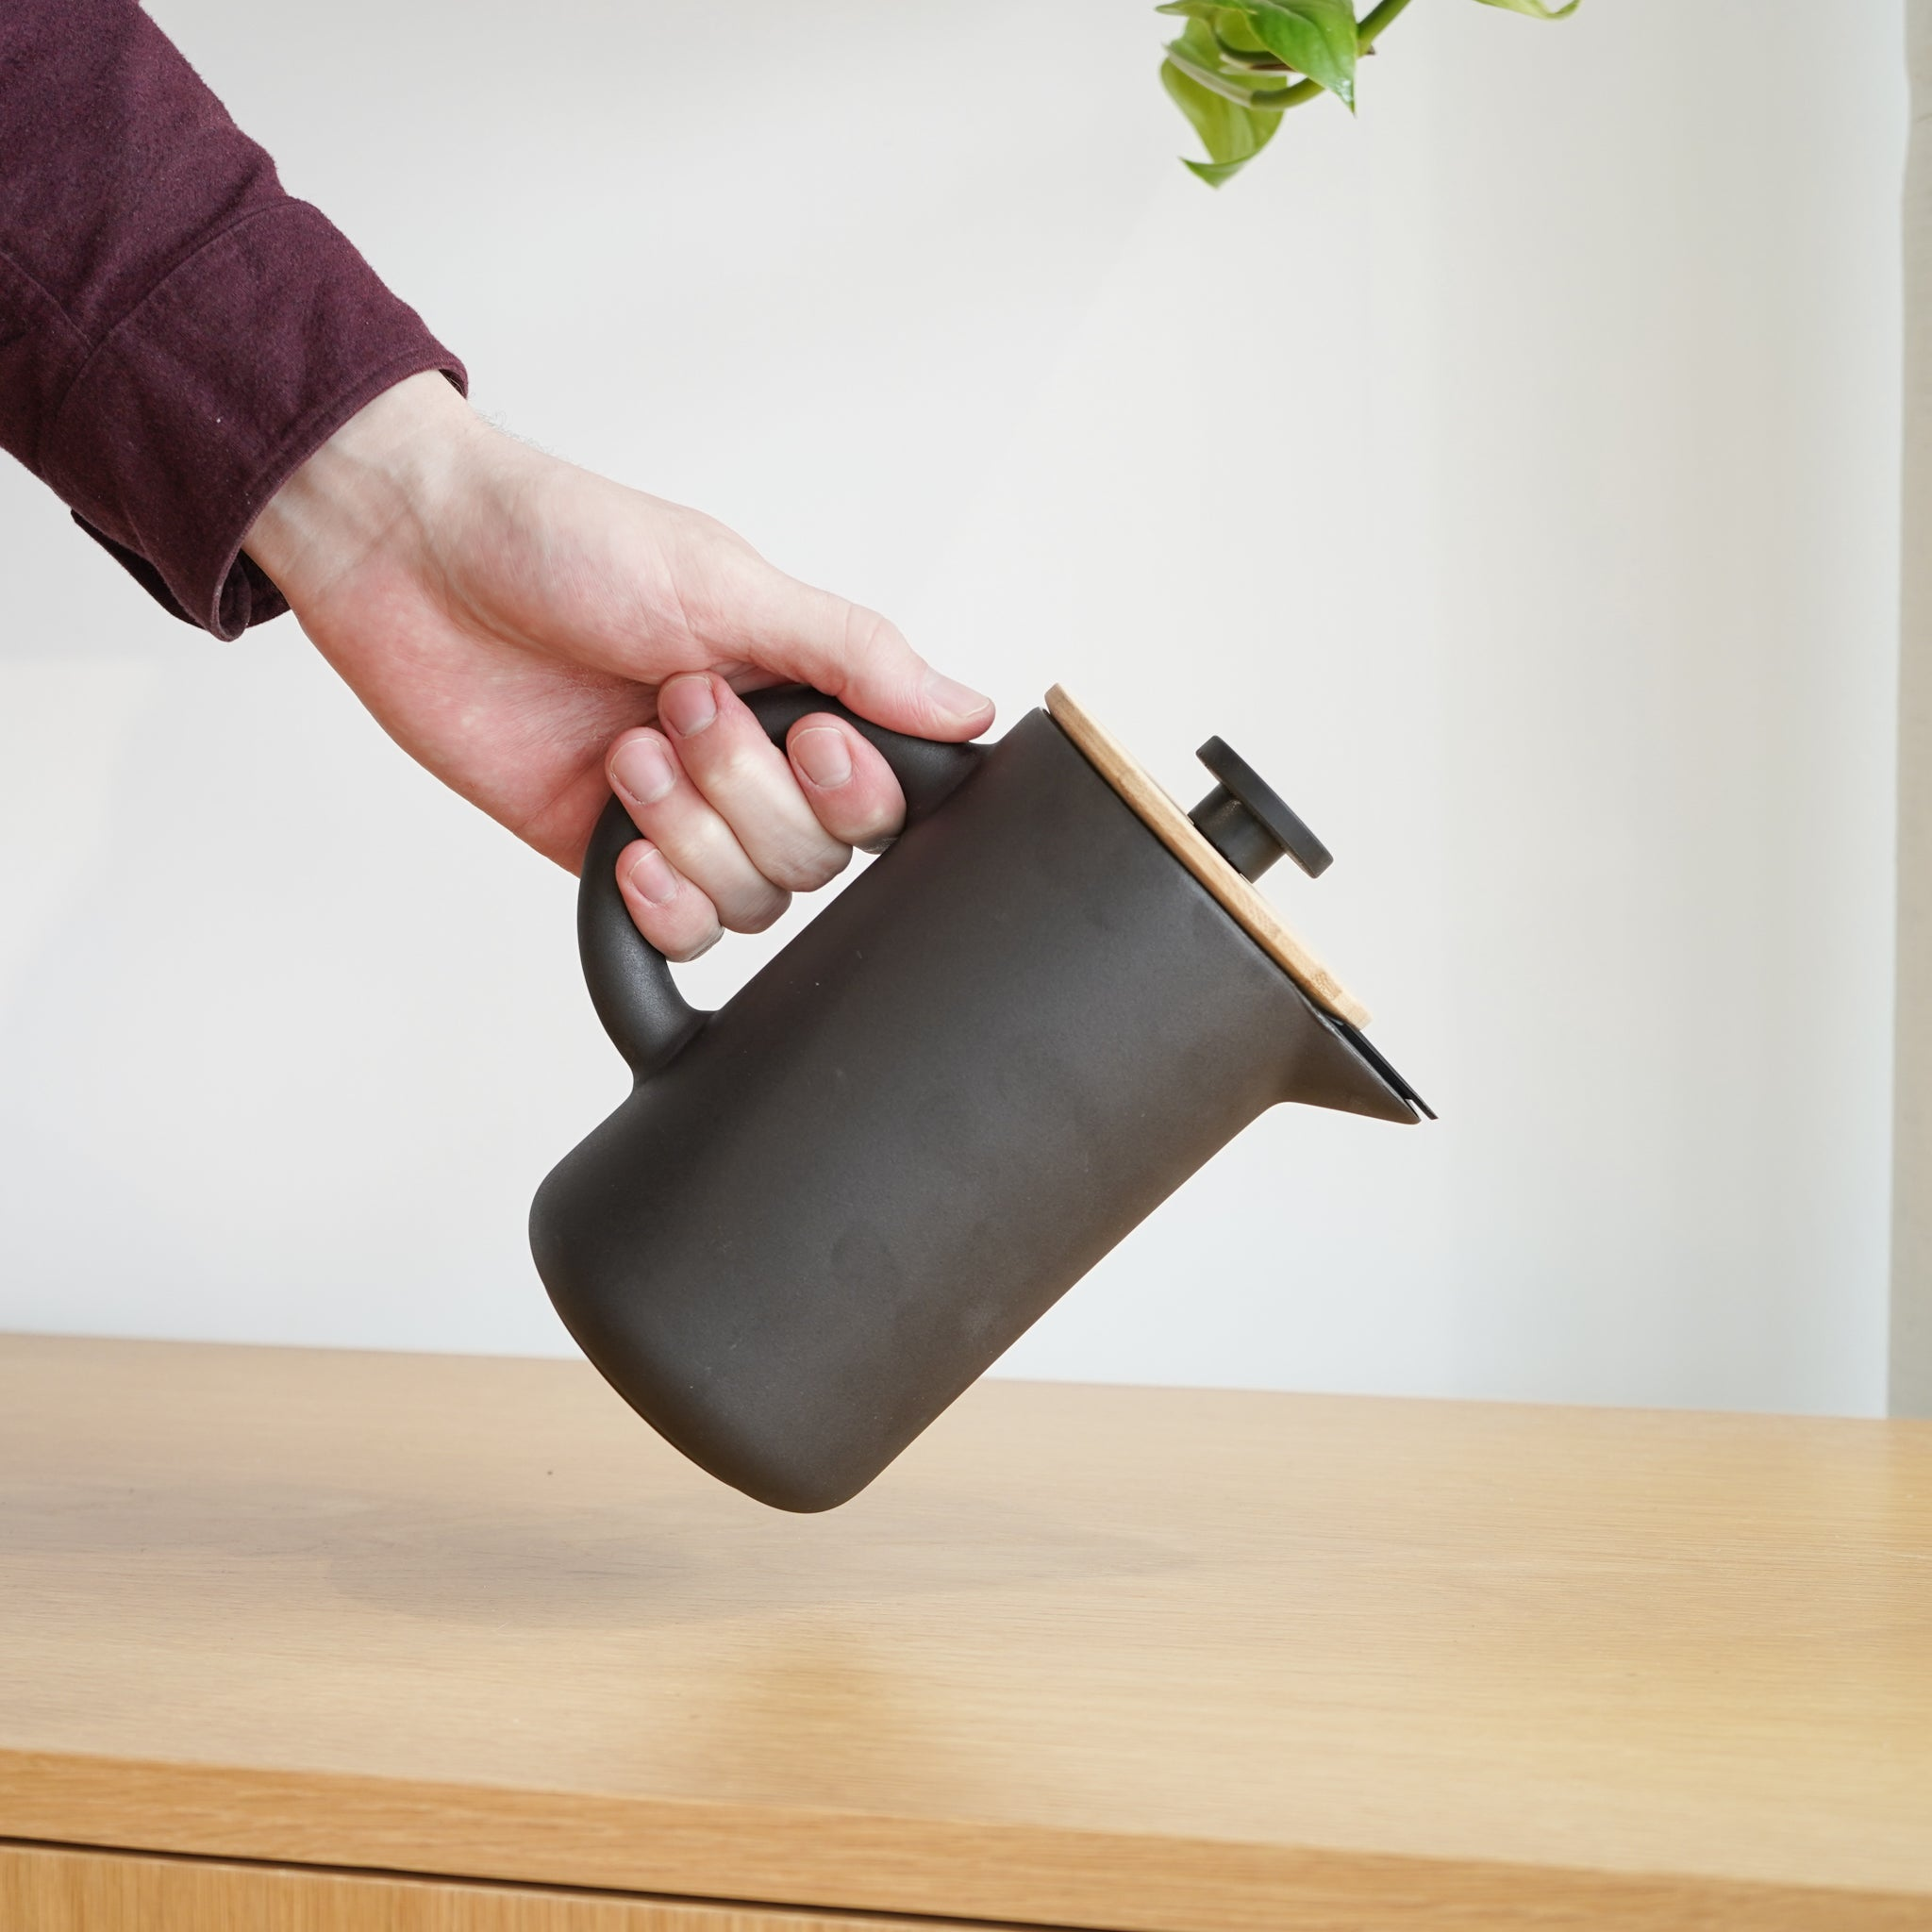 The Theo Coffee Maker is a coffee maker designed by Francis Cayouette for Stelton.